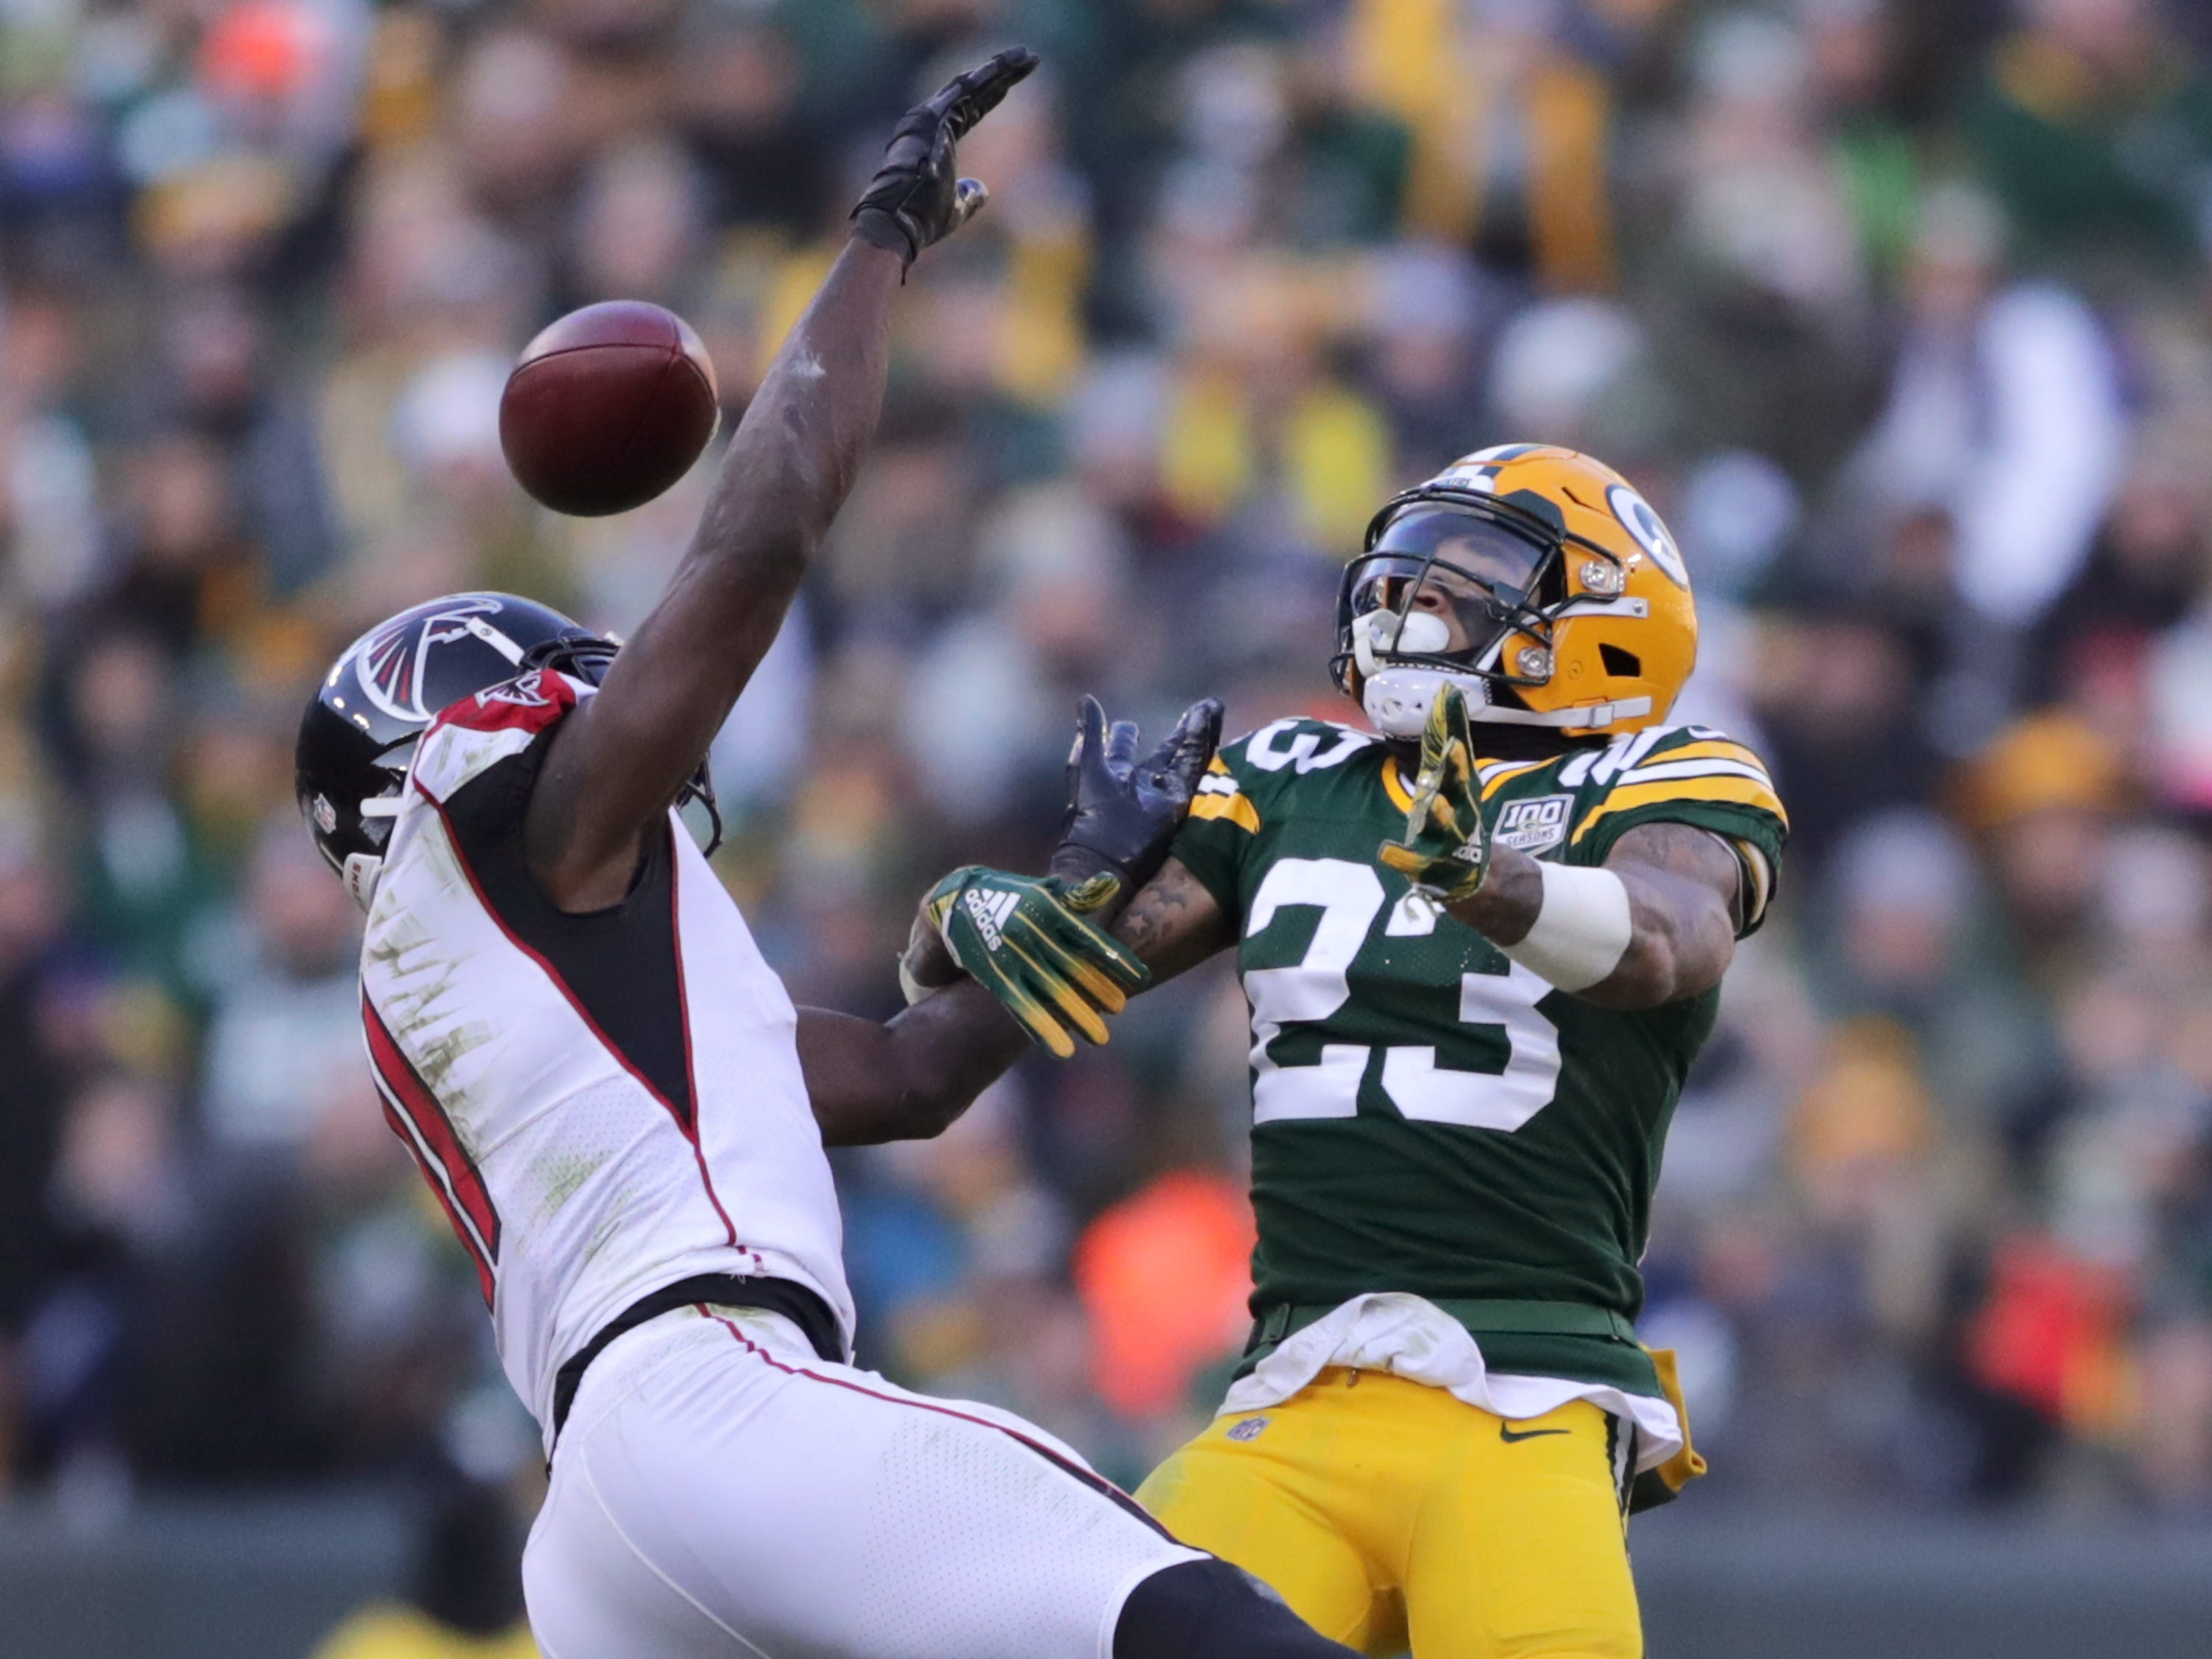 Green Bay Packers cornerback Jaire Alexander breaks up a pass intended for Atlanta Falcons wide receiver Julio Jones during their football game on Sunday, December 9, 2018, at Lambeau Field in Green Bay, Wis. Wm. Glasheen/USA TODAY NETWORK-Wisconsin.